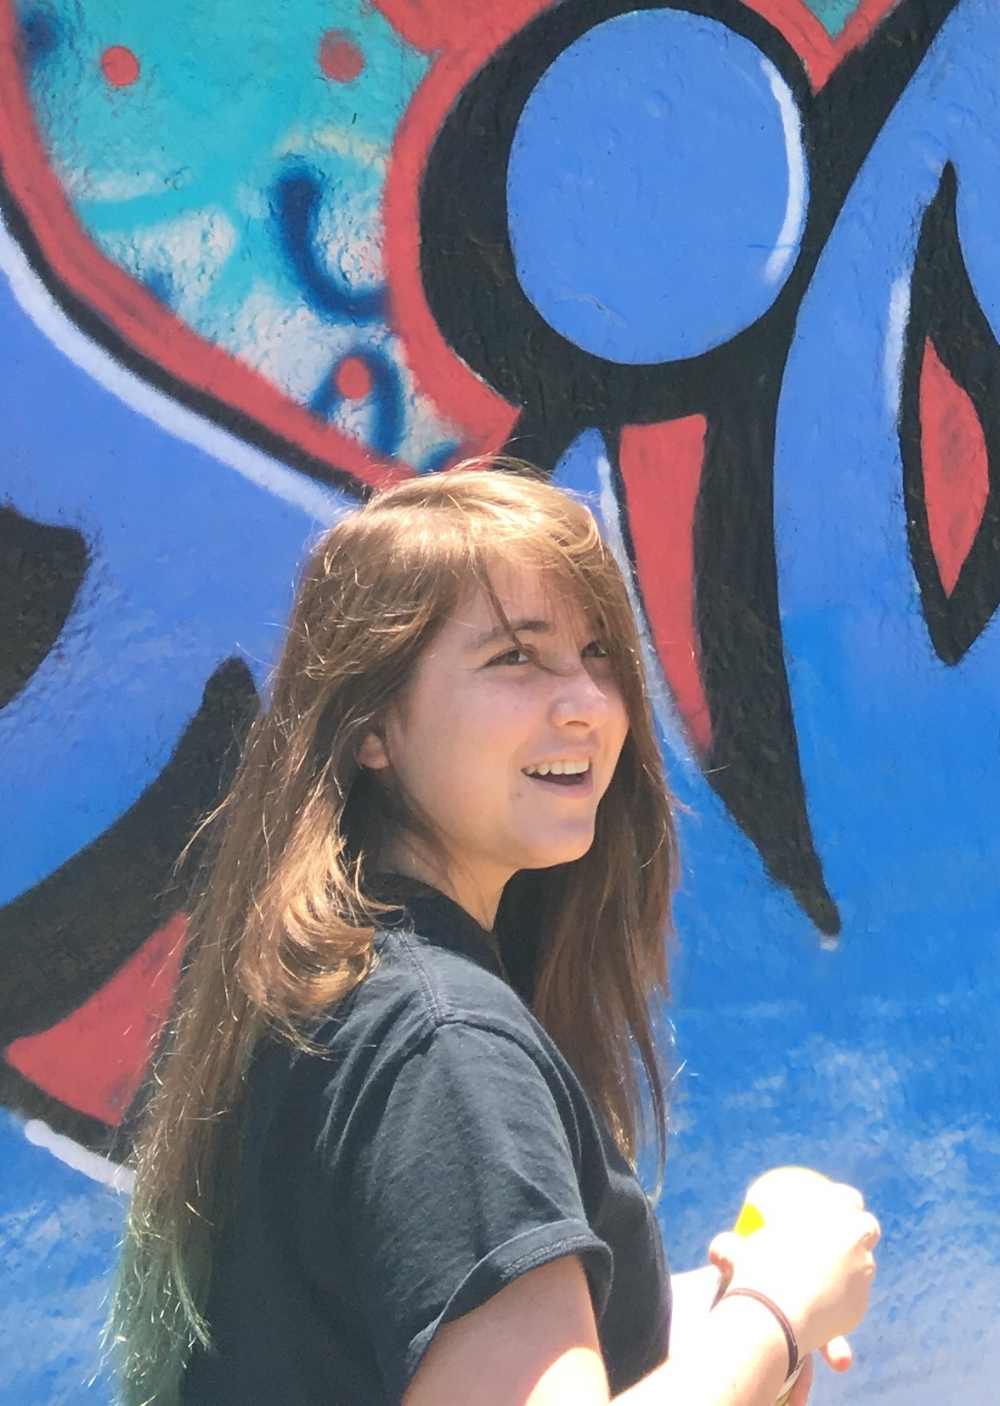 Image Description: A young woman (Genevieve Wilhelm) with long brown hair with teal dyed tips stands in front of a blue and red graffiti wall, turning and laughing at something.